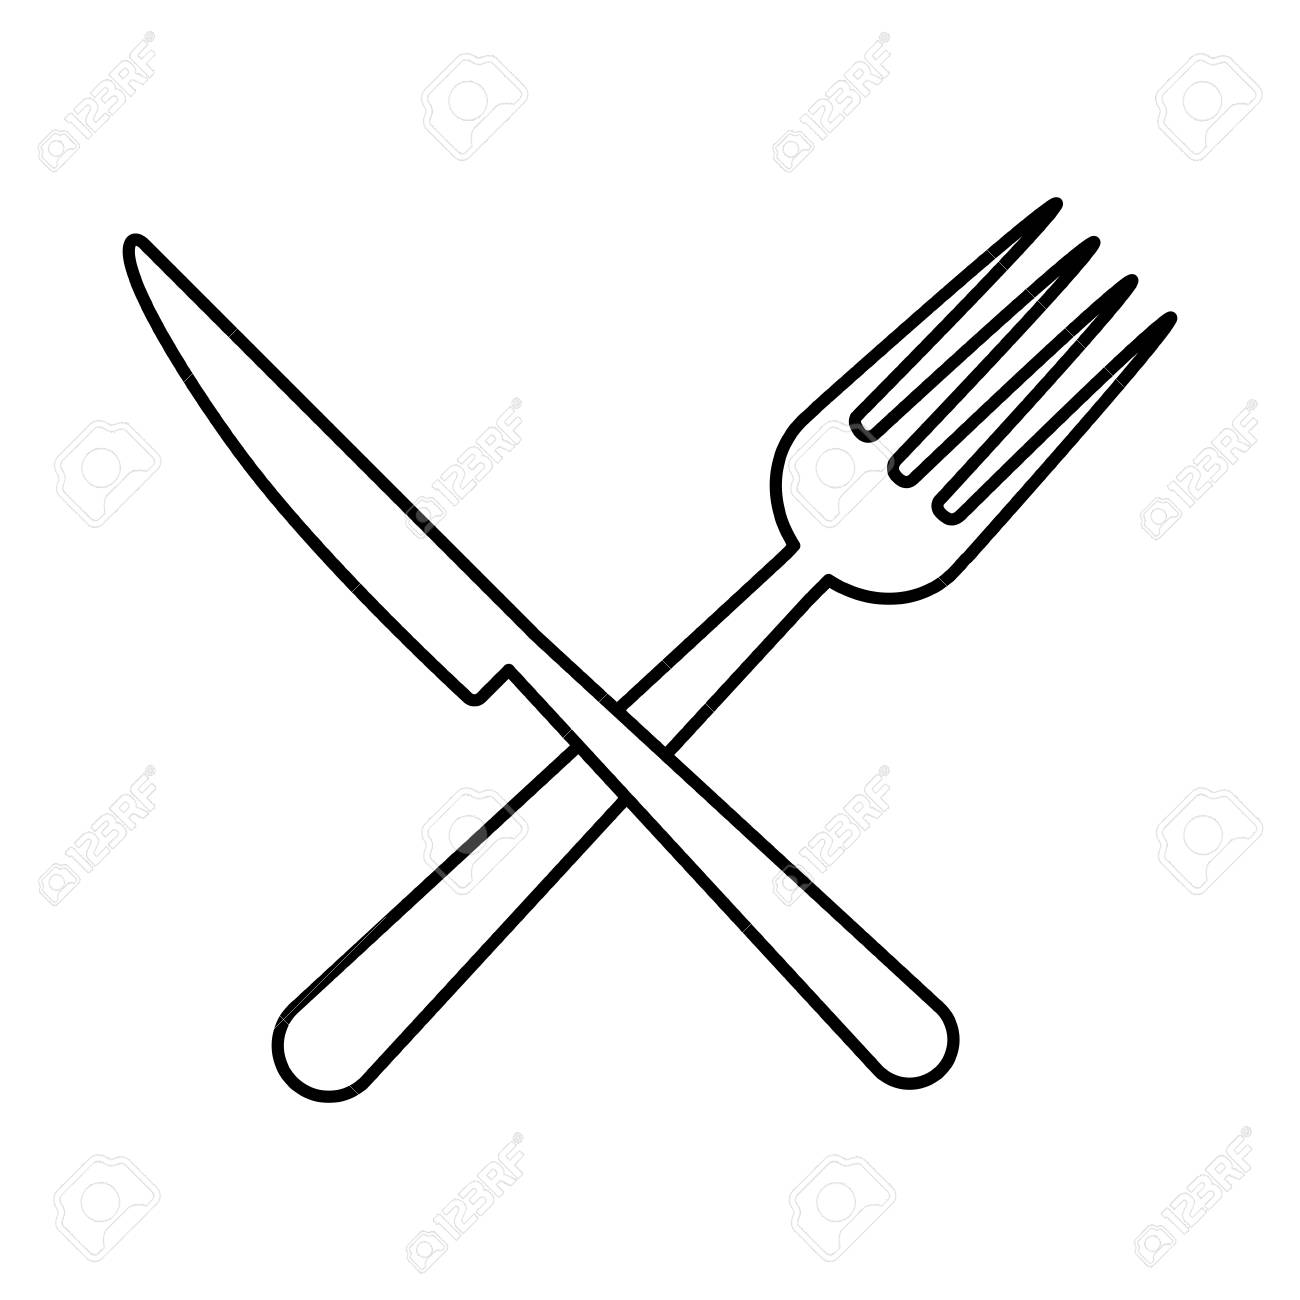 238 Fork And Knife free clipart.